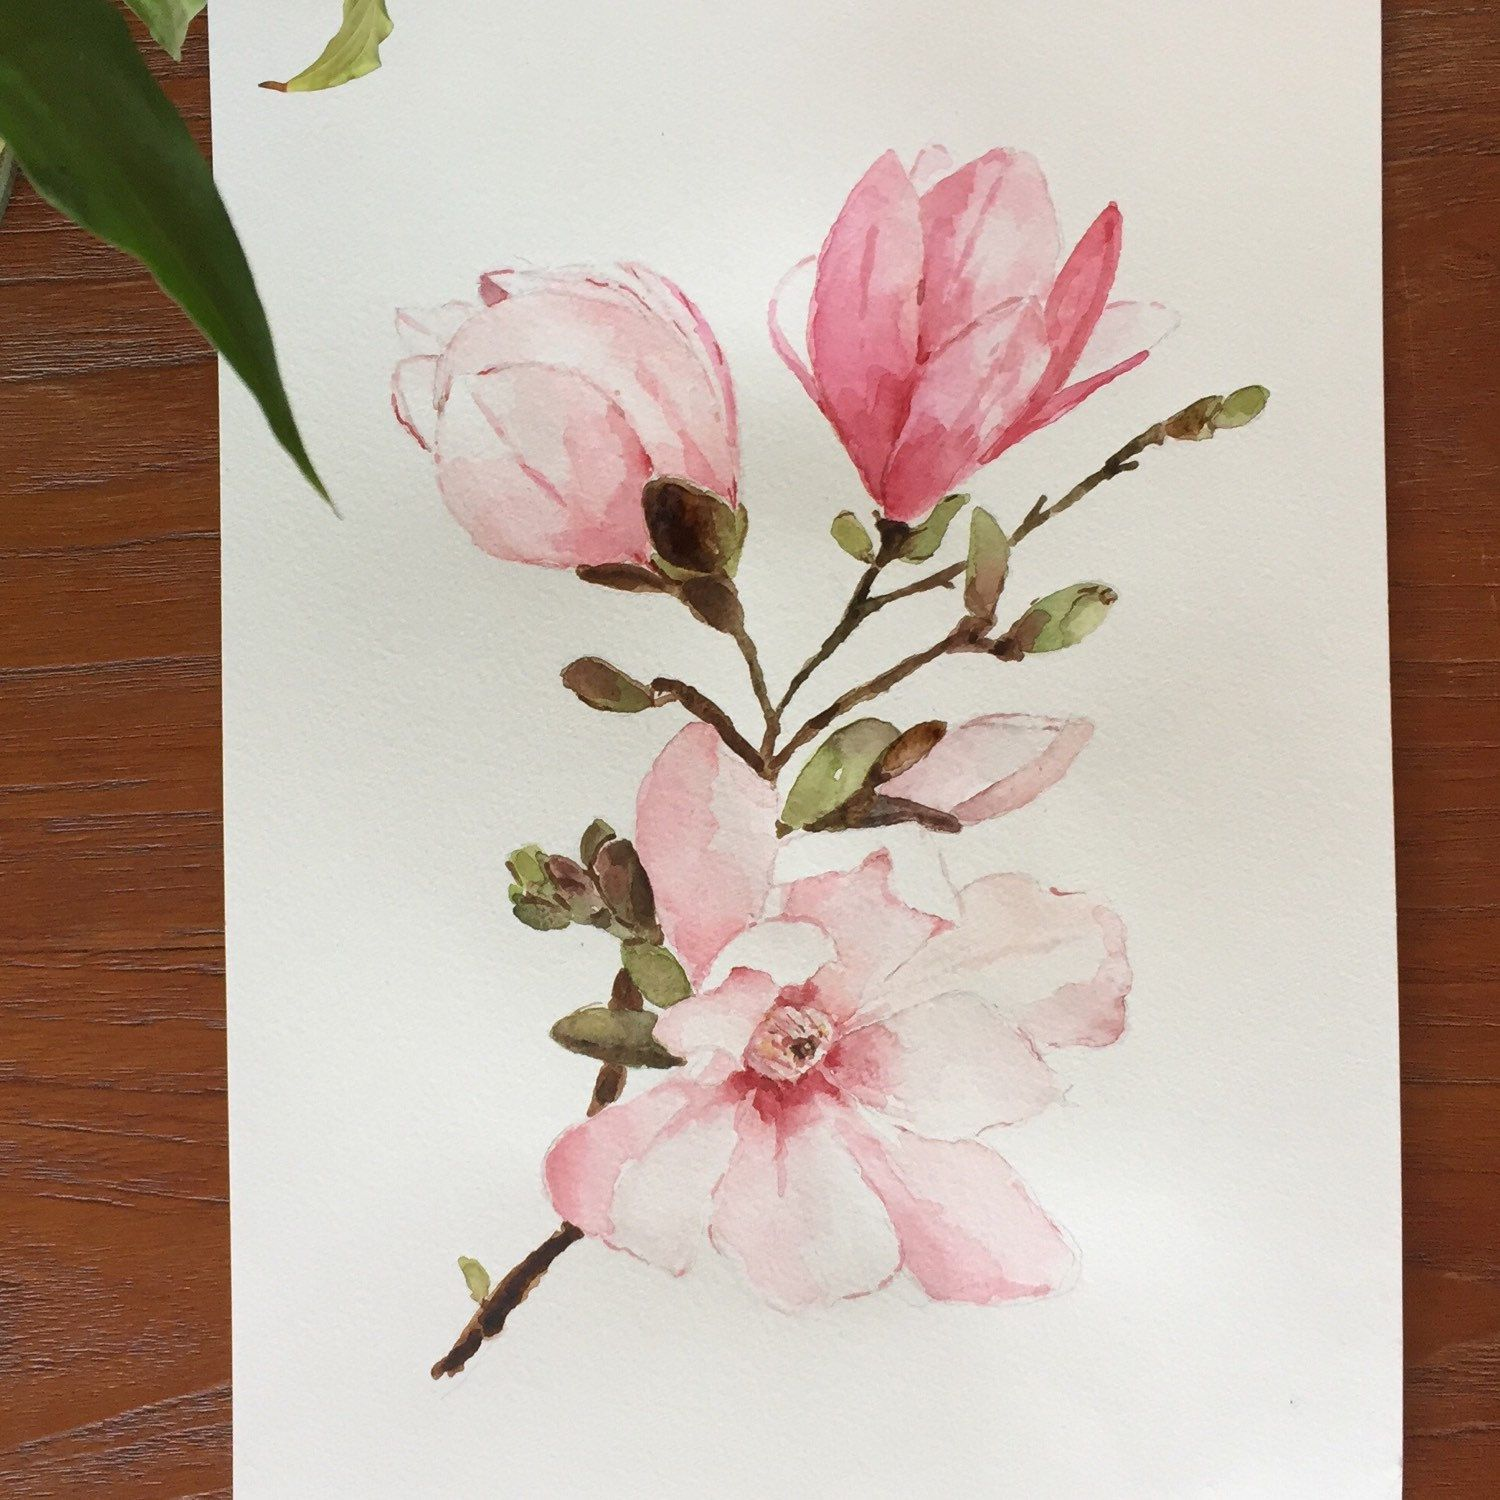 Just Added A New Watercolor Painting Of Beautiful Magnolia Flowers Watercolor Flowers Paintings Floral Watercolor Flower Drawing